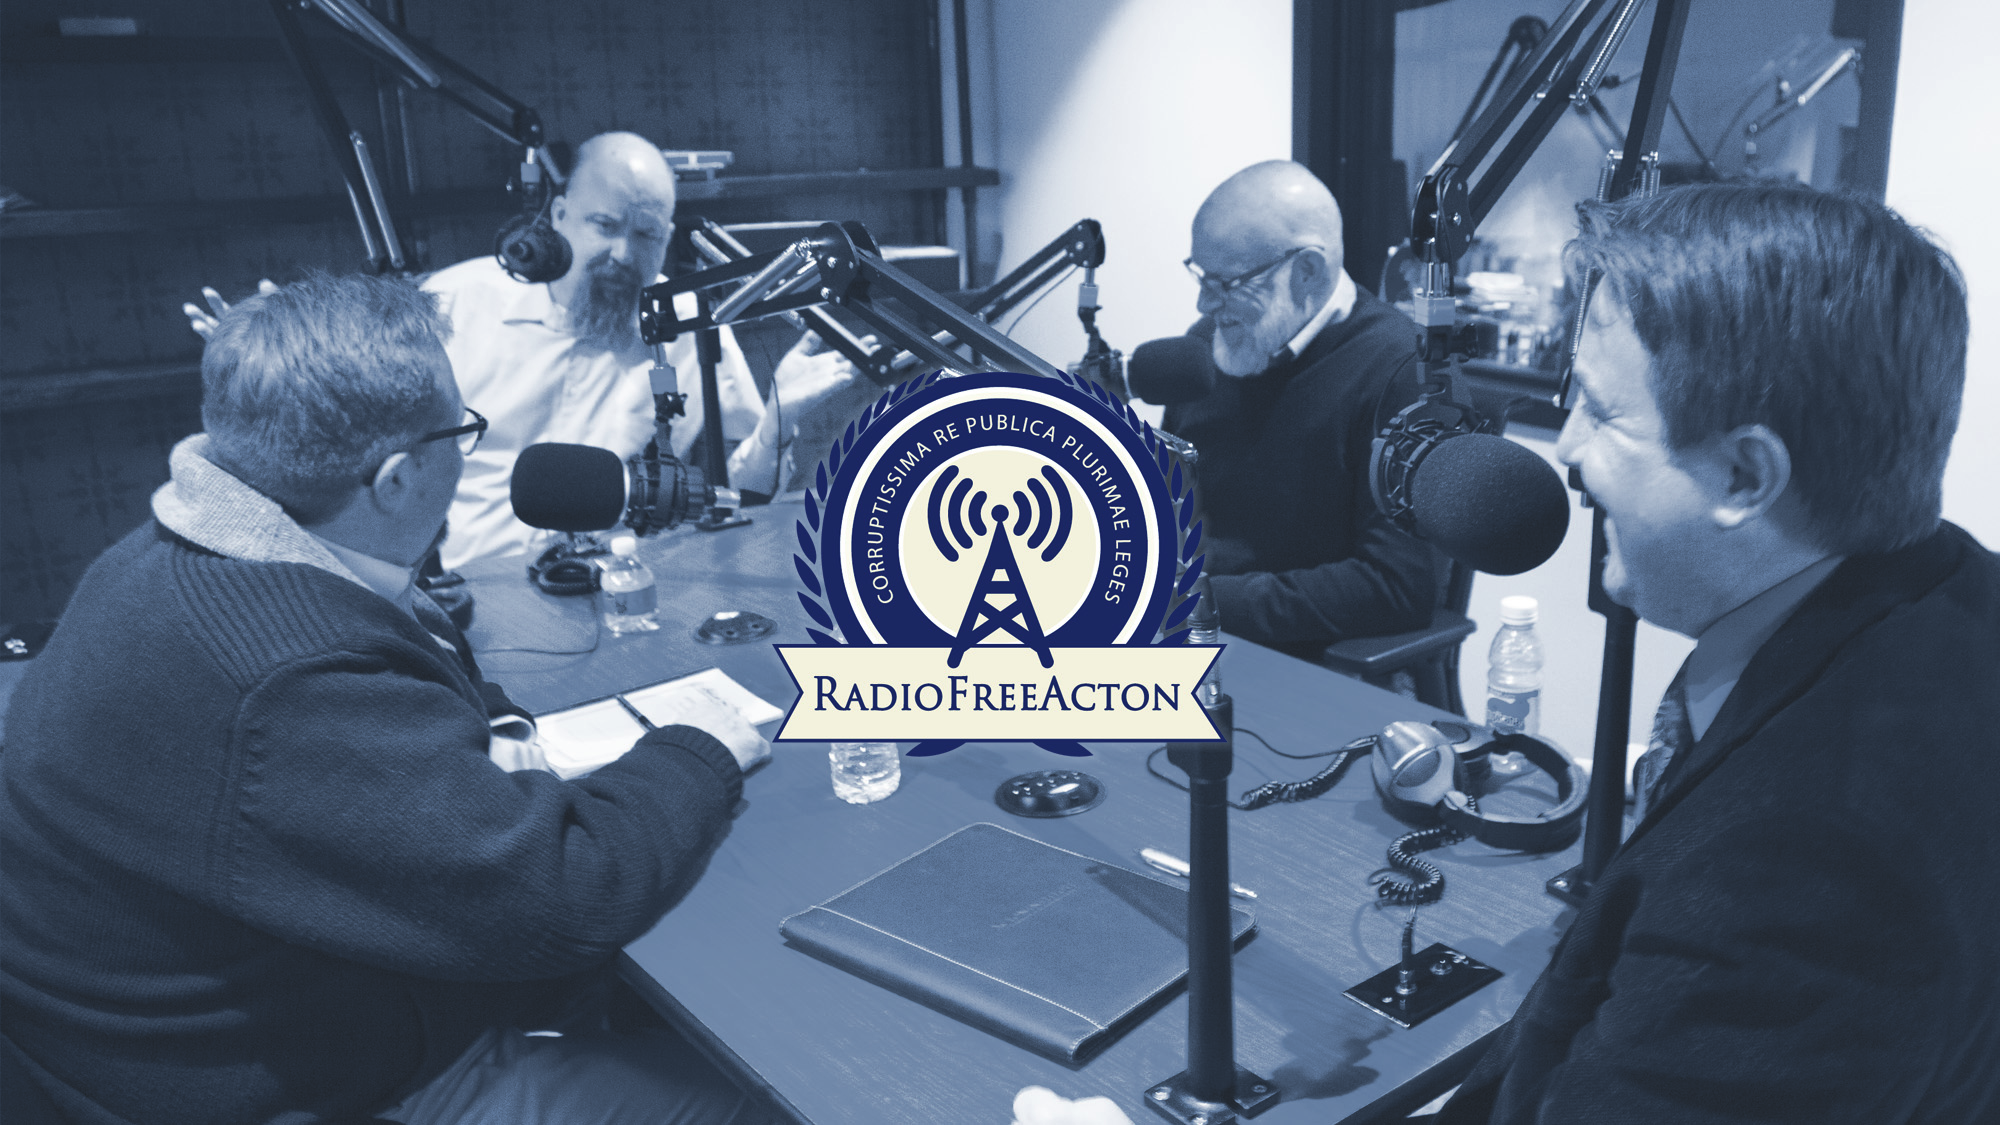 Radio Free Acton - Christian Democracy